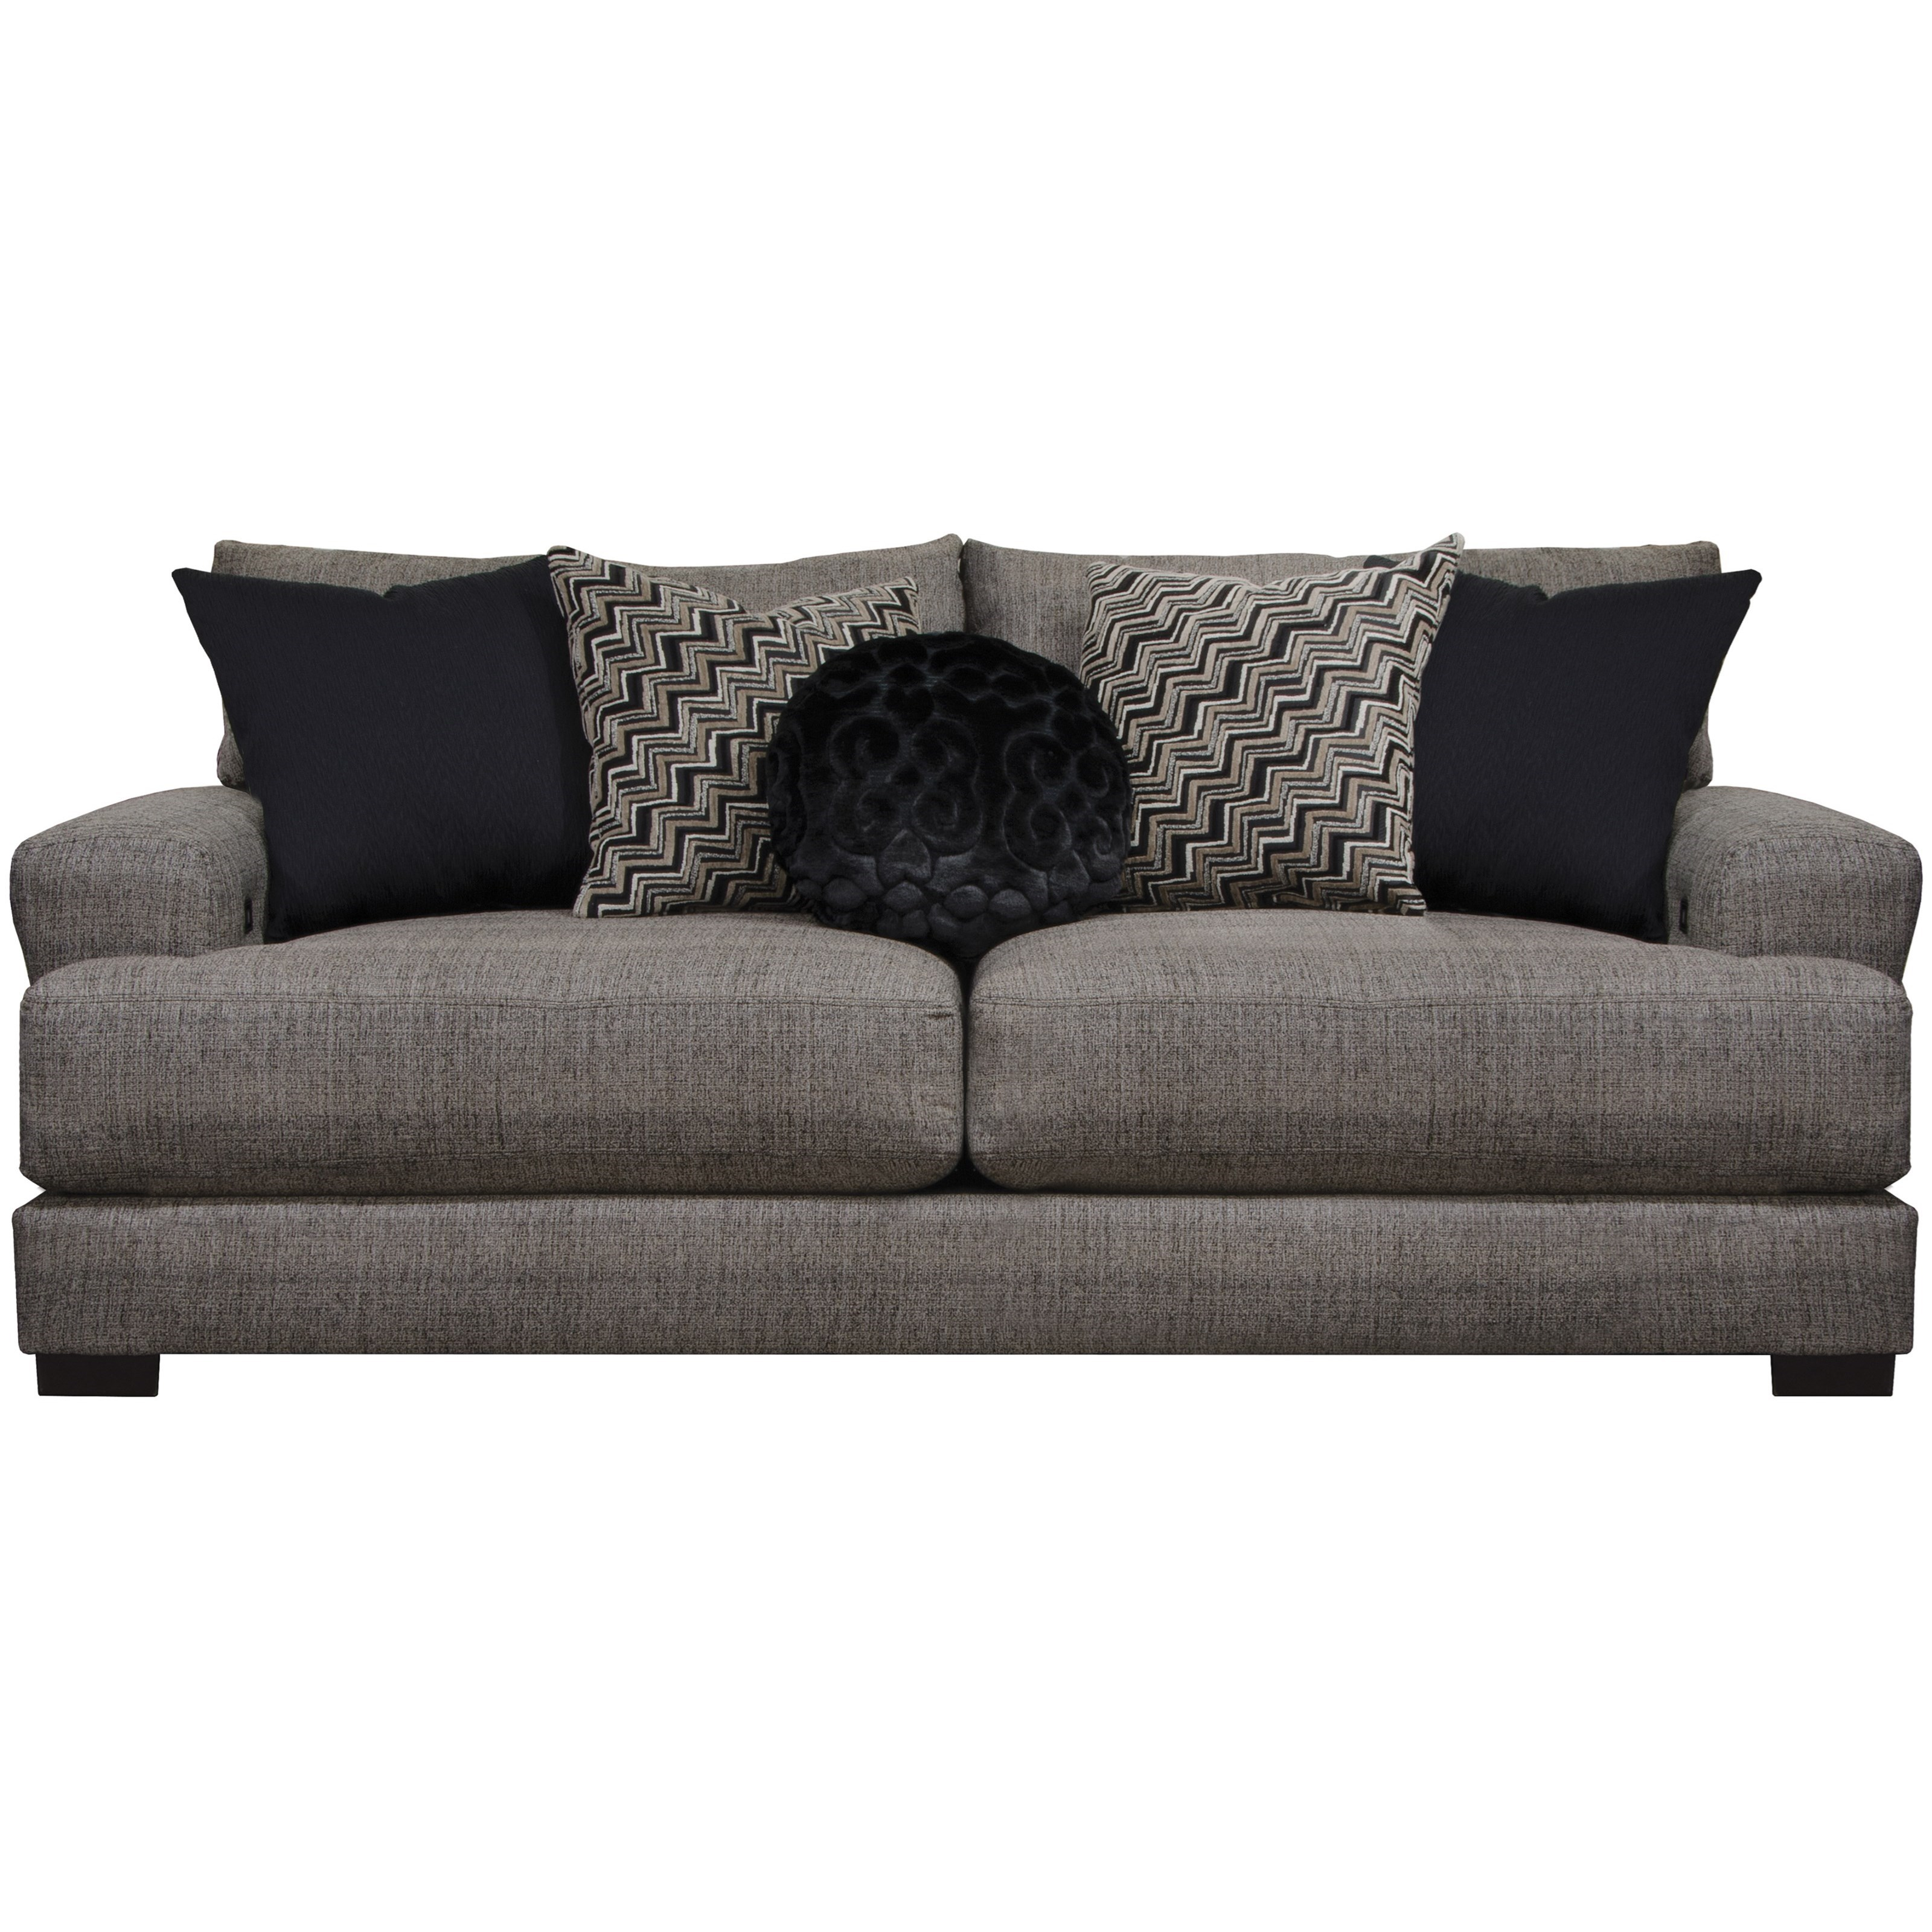 Ava Sofa by Jackson Furniture at EFO Furniture Outlet